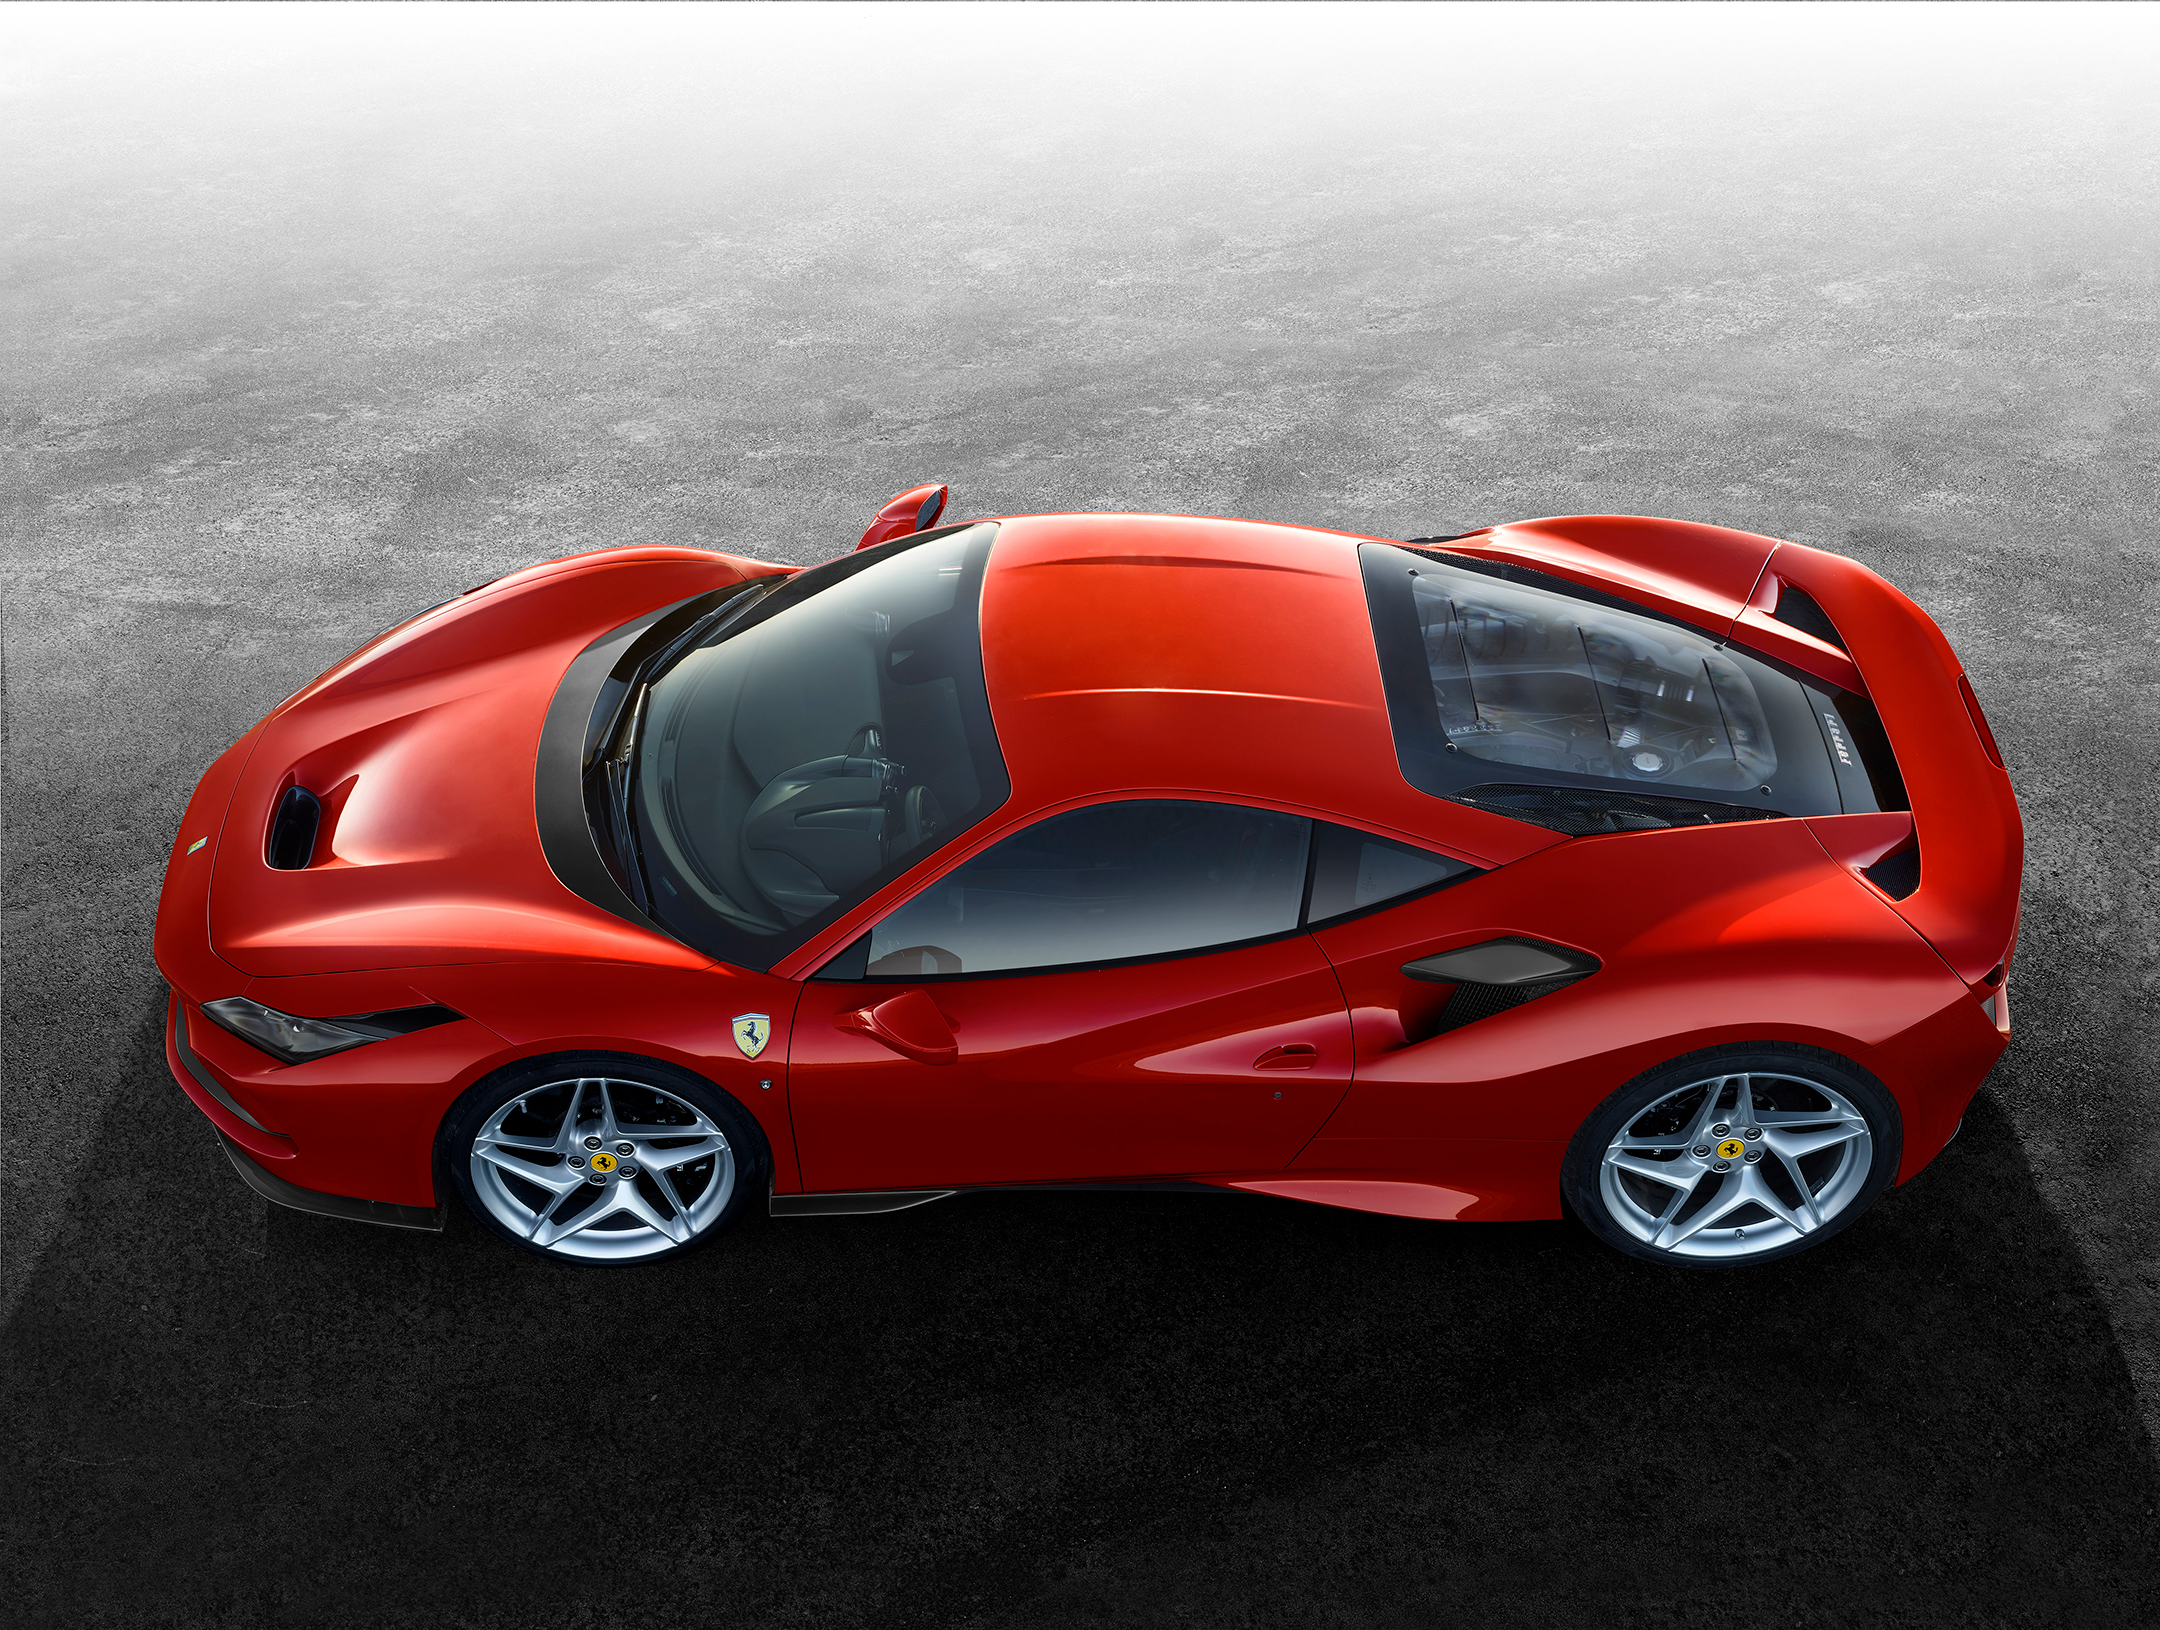 Ferrari F8 Tributo - 2019 - side-face / profil